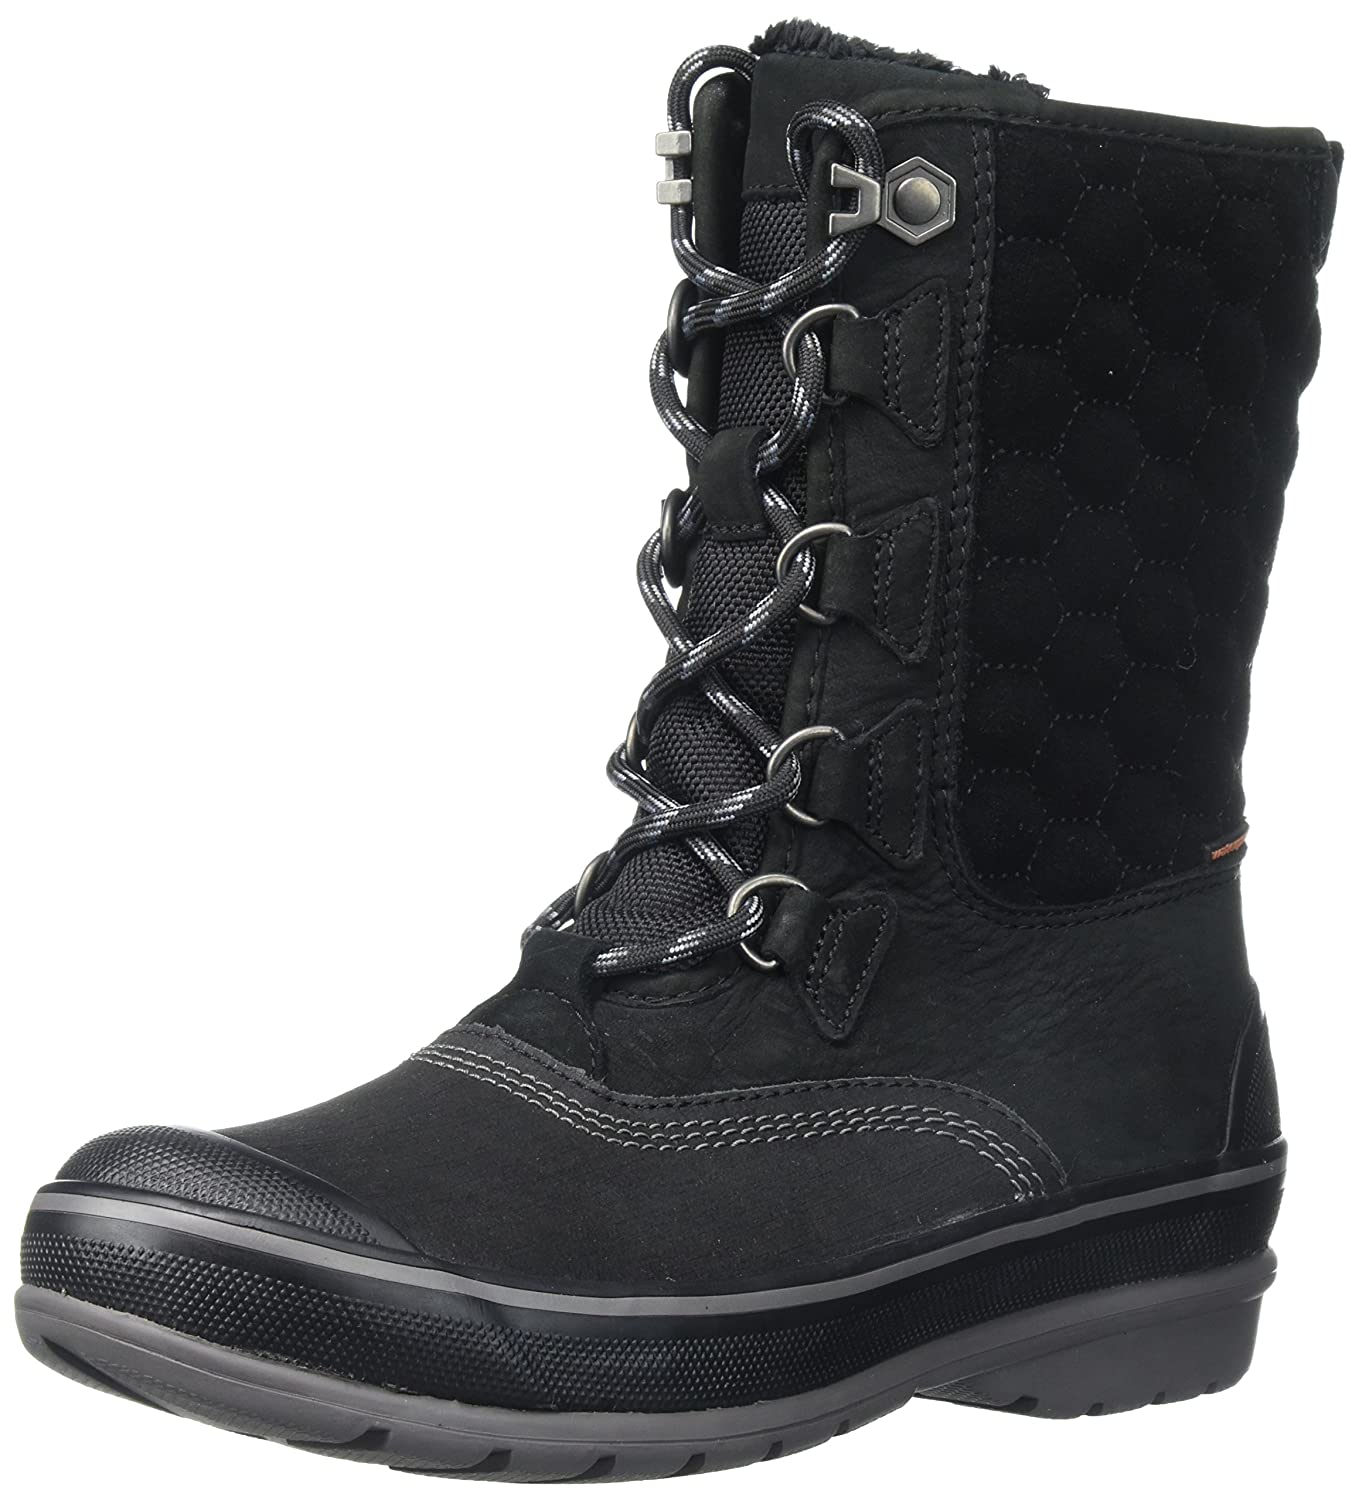 CLARKS Women's Muckers Lace Snow Boot B01N5ES52E 9.5 B(M) US|Black Nubuck